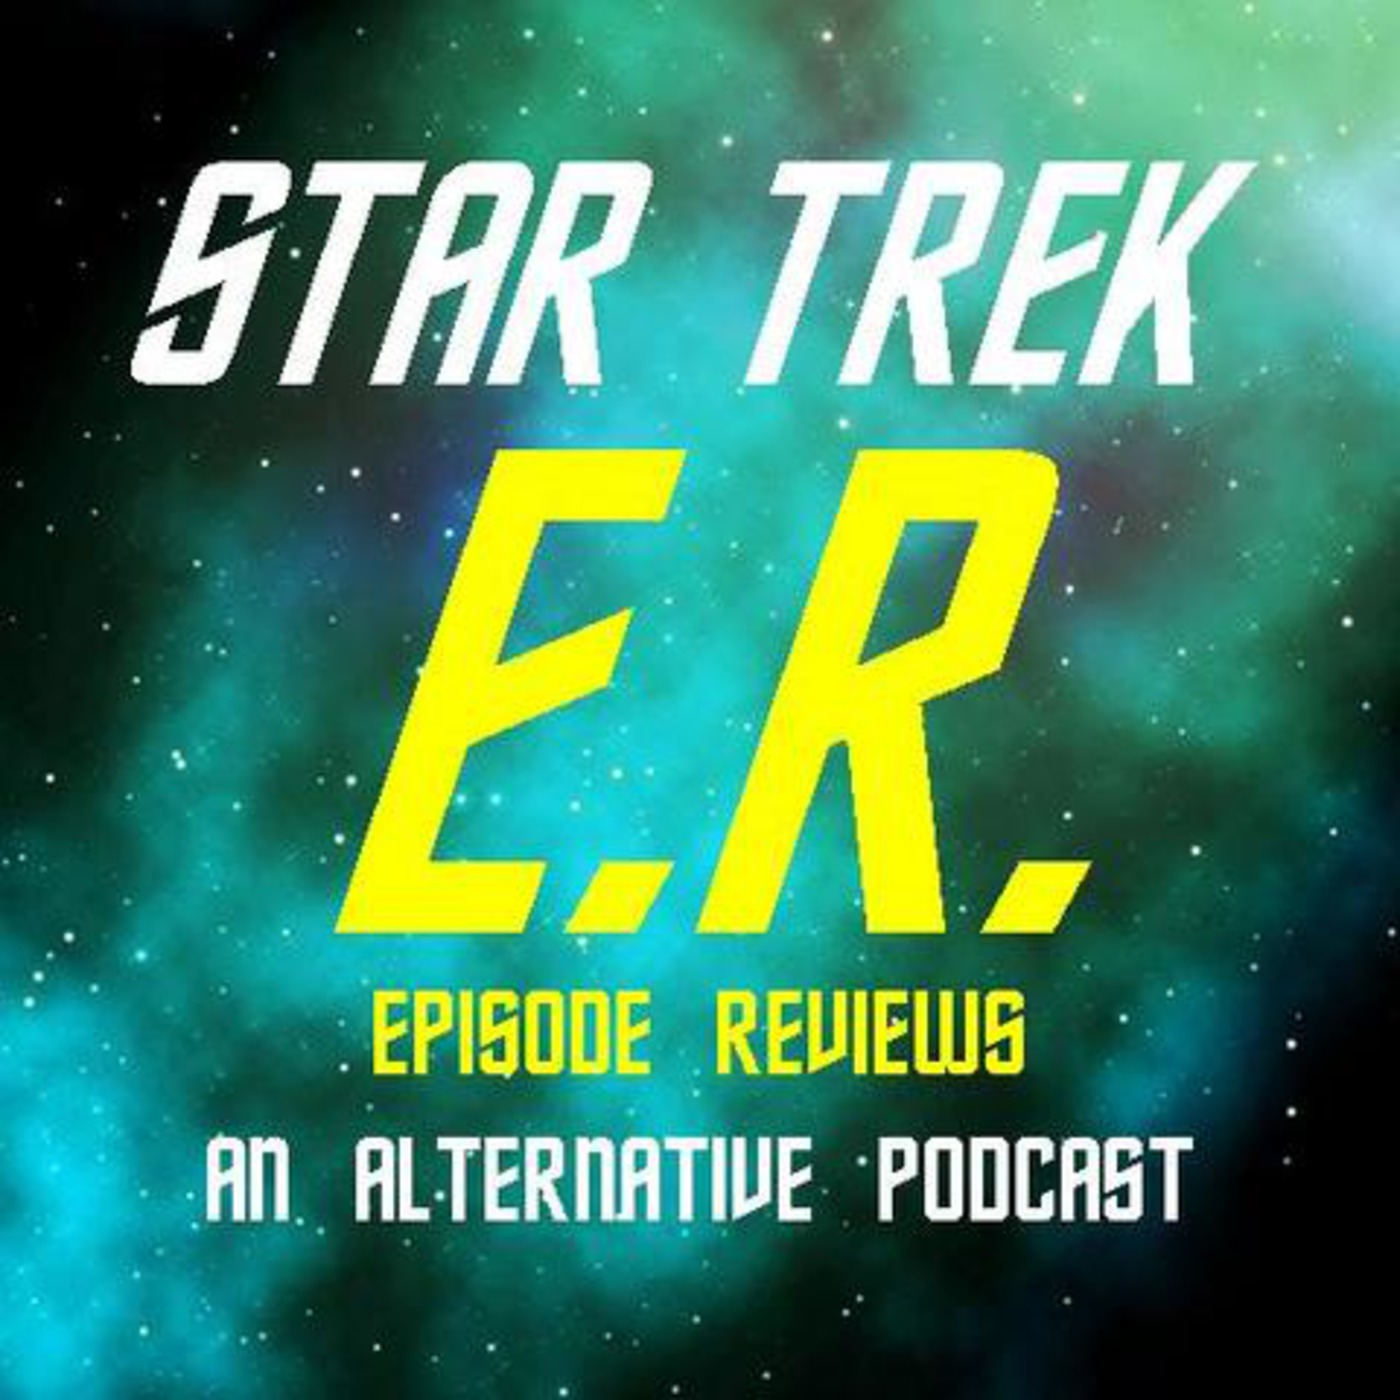 Star Trek ER Podcast